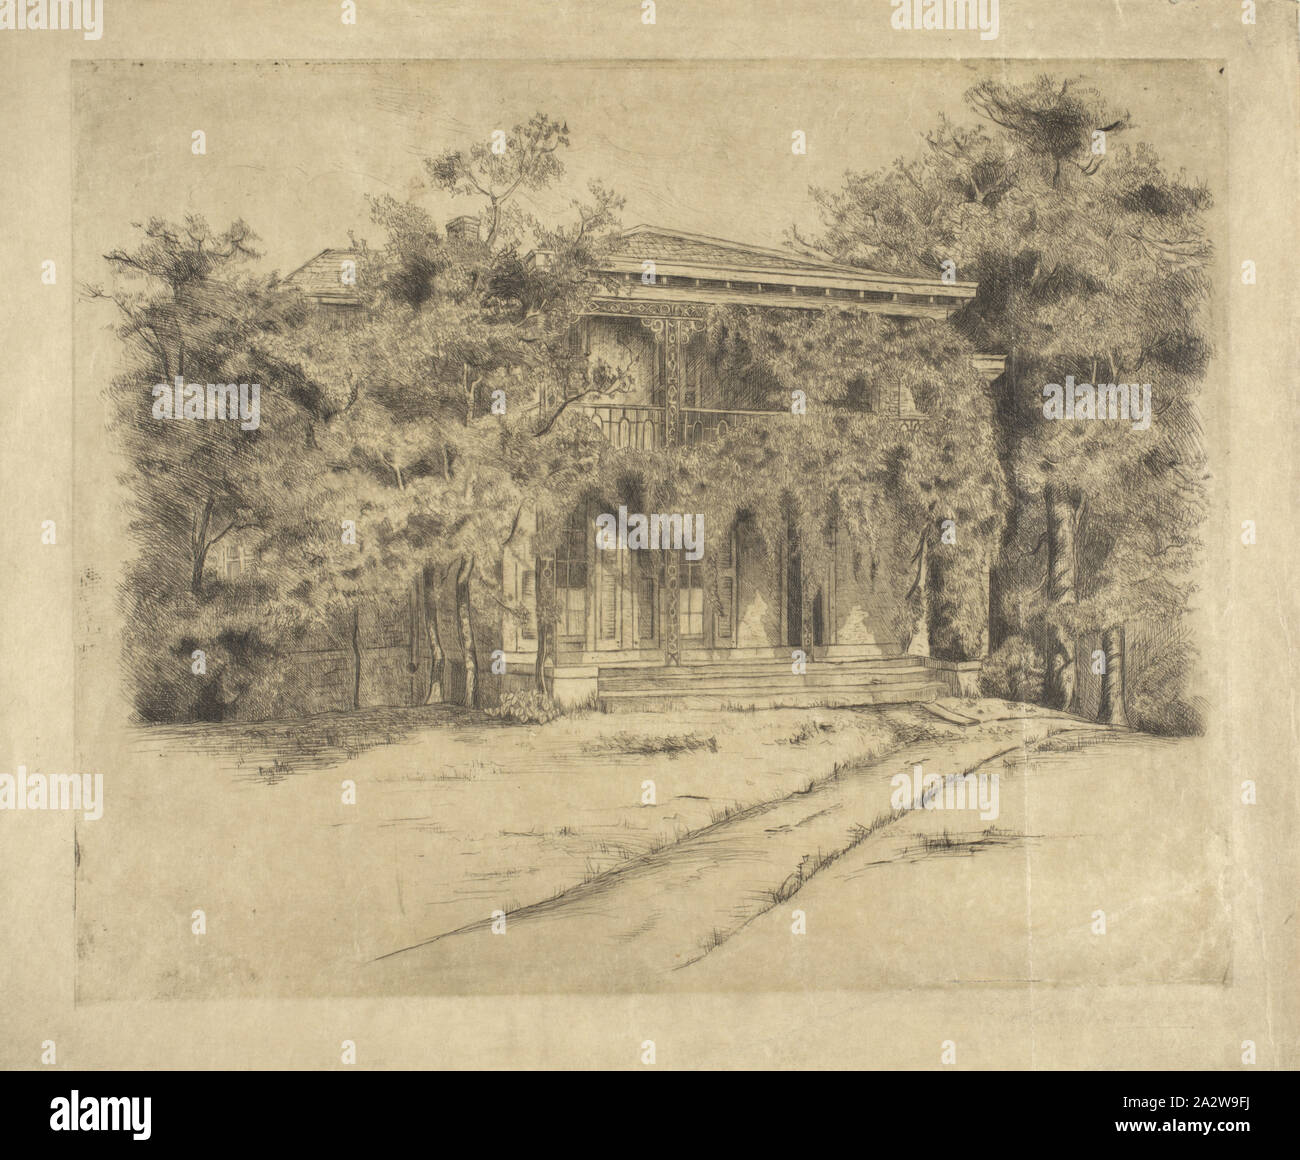 The Tinker Homestead, Edith Walmsley (American), about 1890, ink on paper, 9-3/4 x 12 in. (image) 12 x 14 in. (sheet), inscribed in pencil, verso, C.: Tinker Homestead, etching by Edith Walmsley, signed in pencil, below image, L.R.: Edith Walmsley Stock Photo